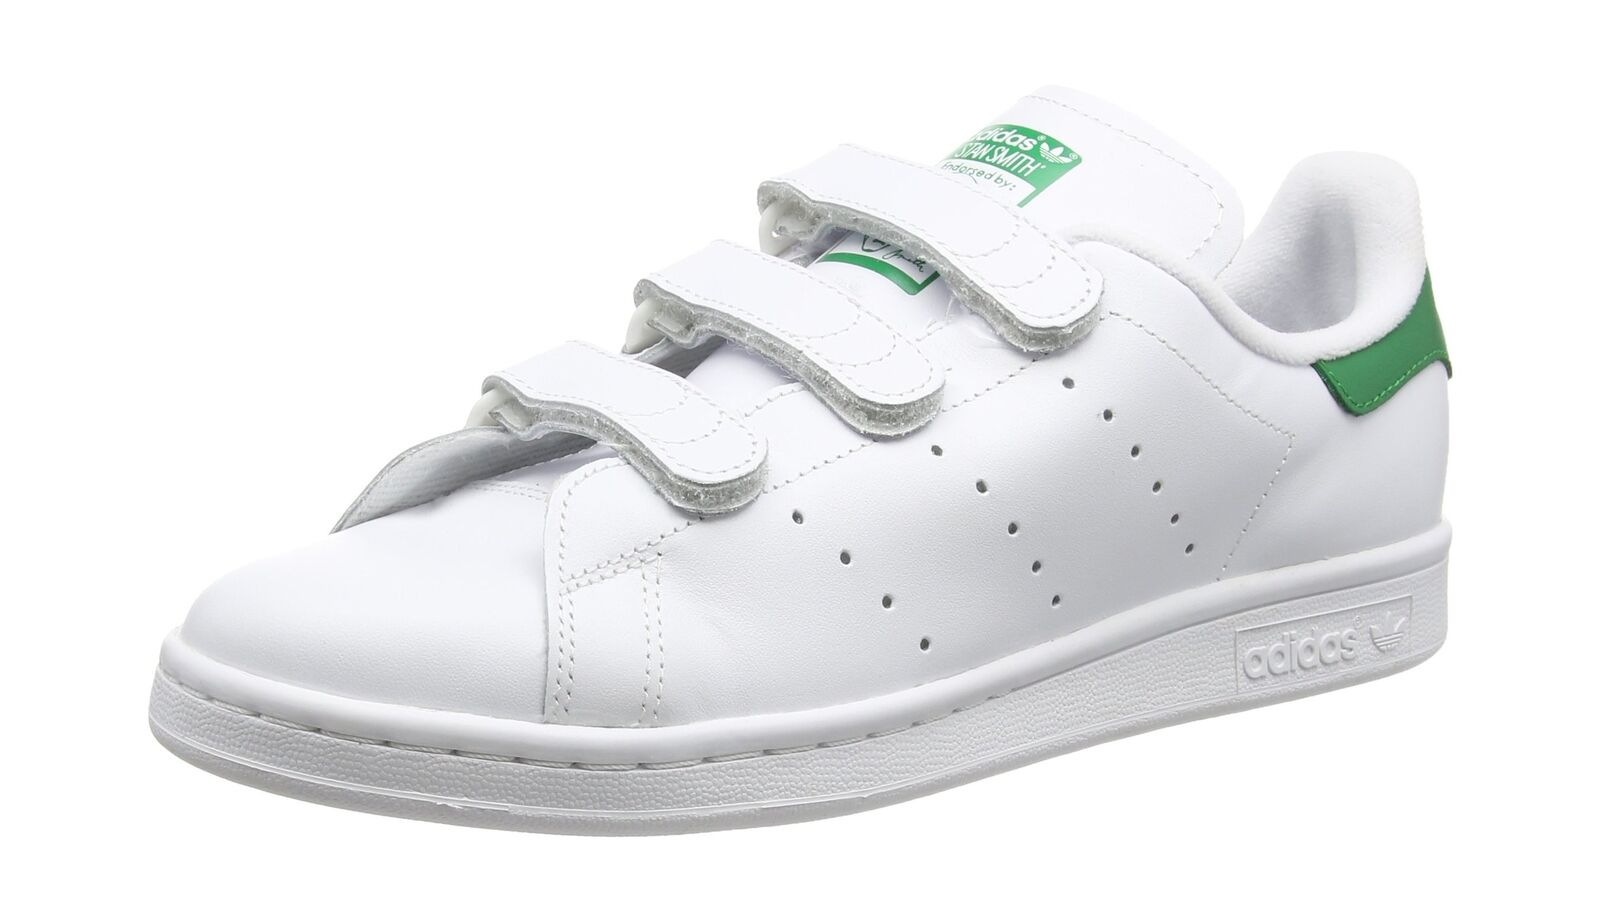 adidas Originals Stan Smith blanc Navy homme Casual chaussures Sneakers M20325